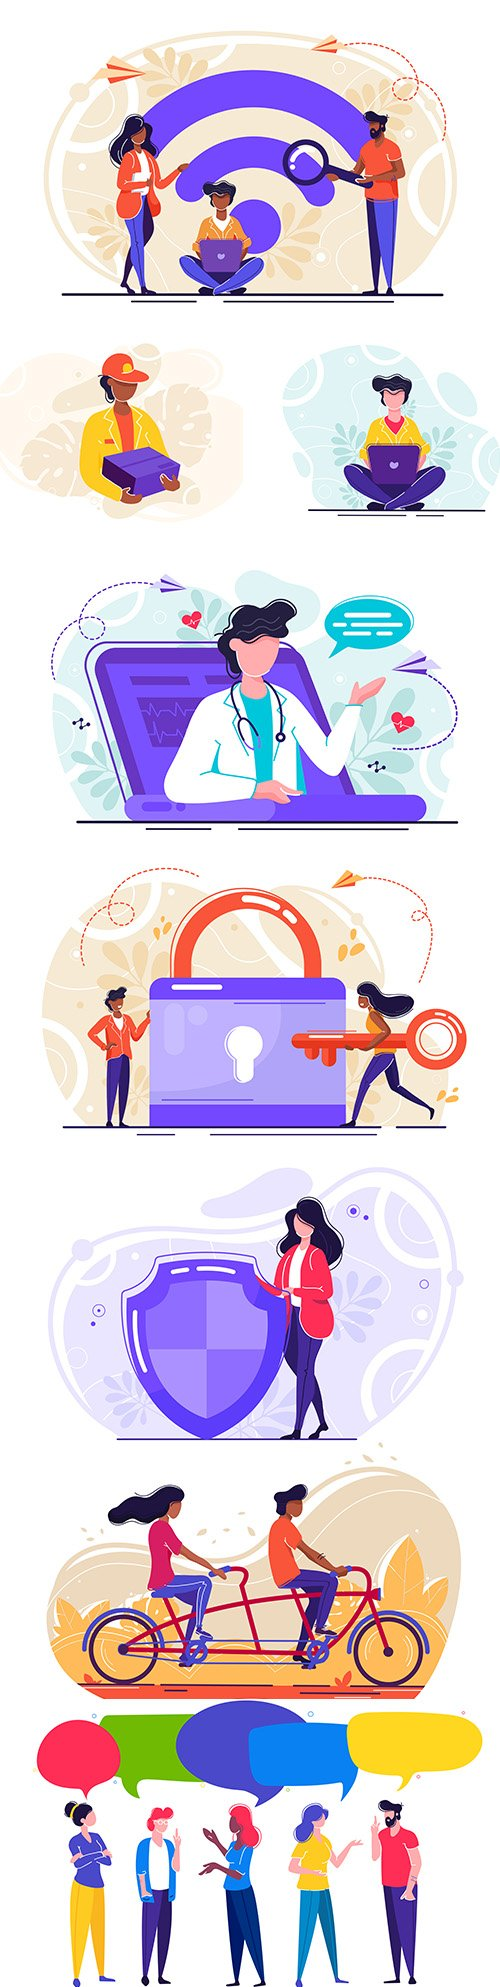 People and objects abstract vector illustrations